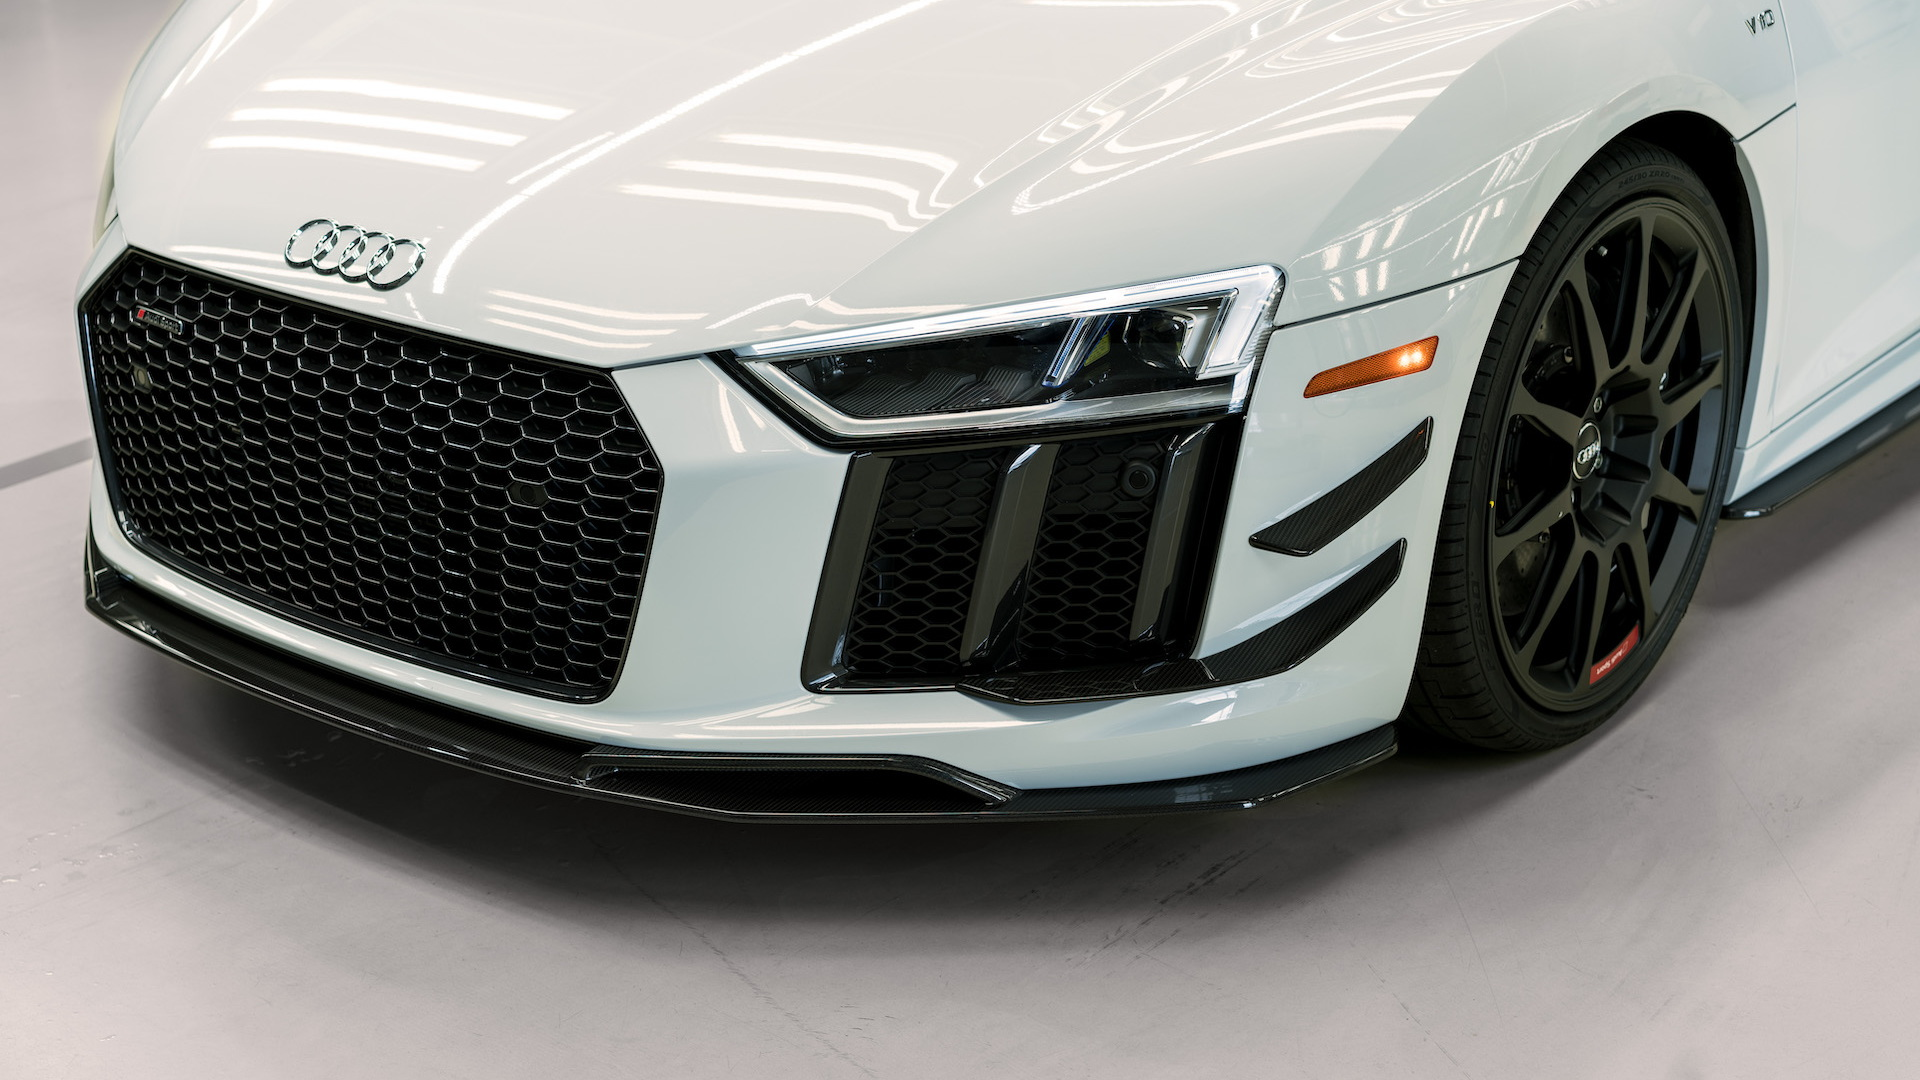 2018 Audi R8 V10 Plus Coupe Competition arrives, limited to 10 cars